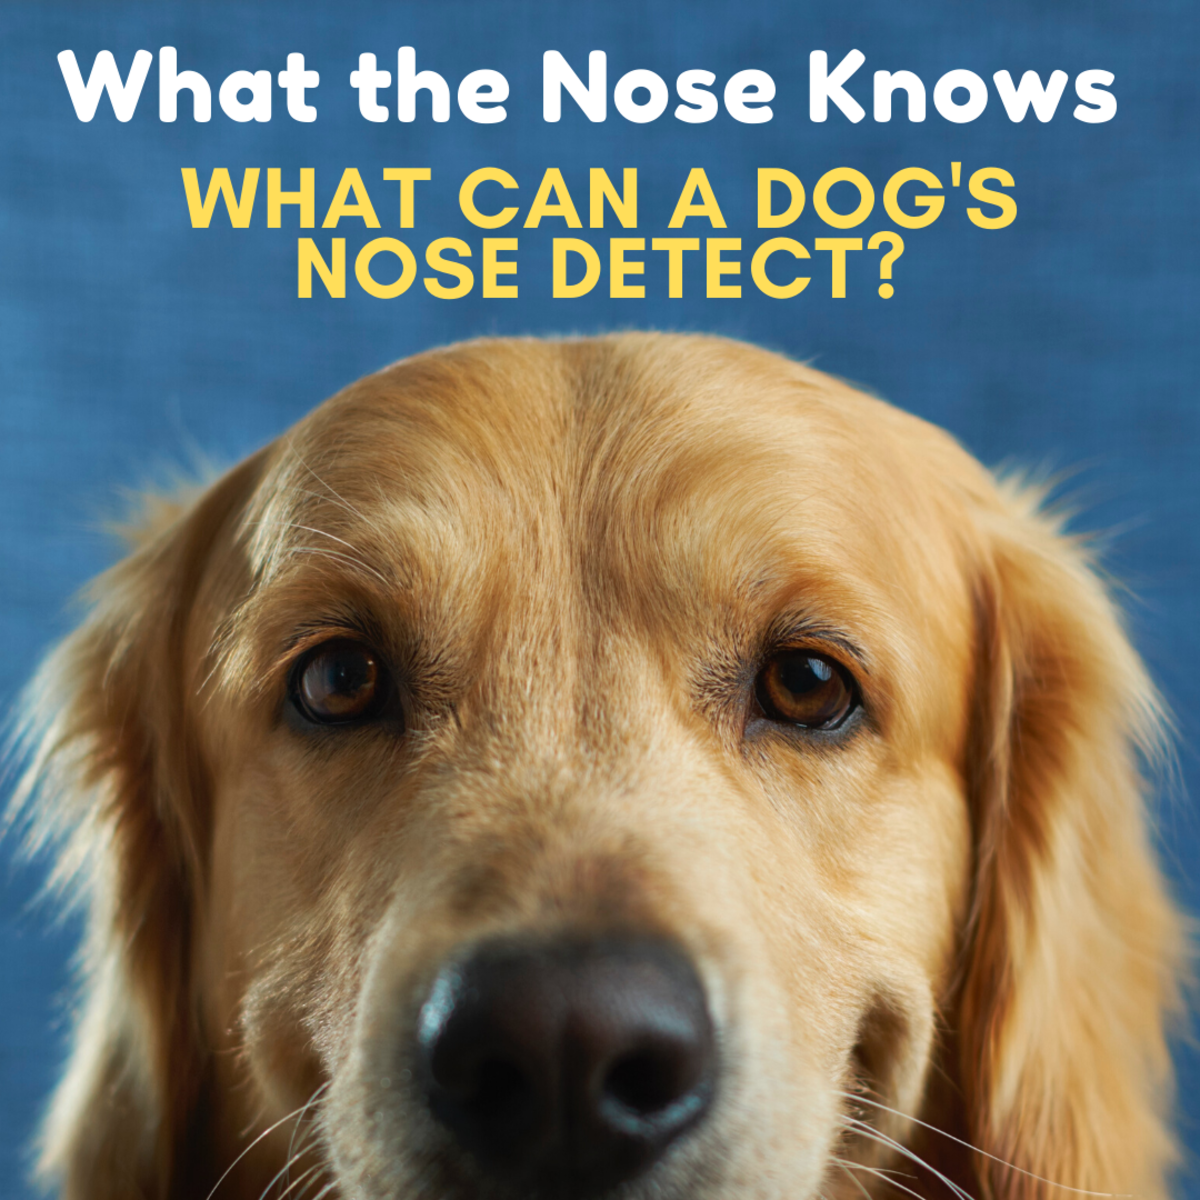 A Dog's Nose Can Find Disease, Disaster, and Death